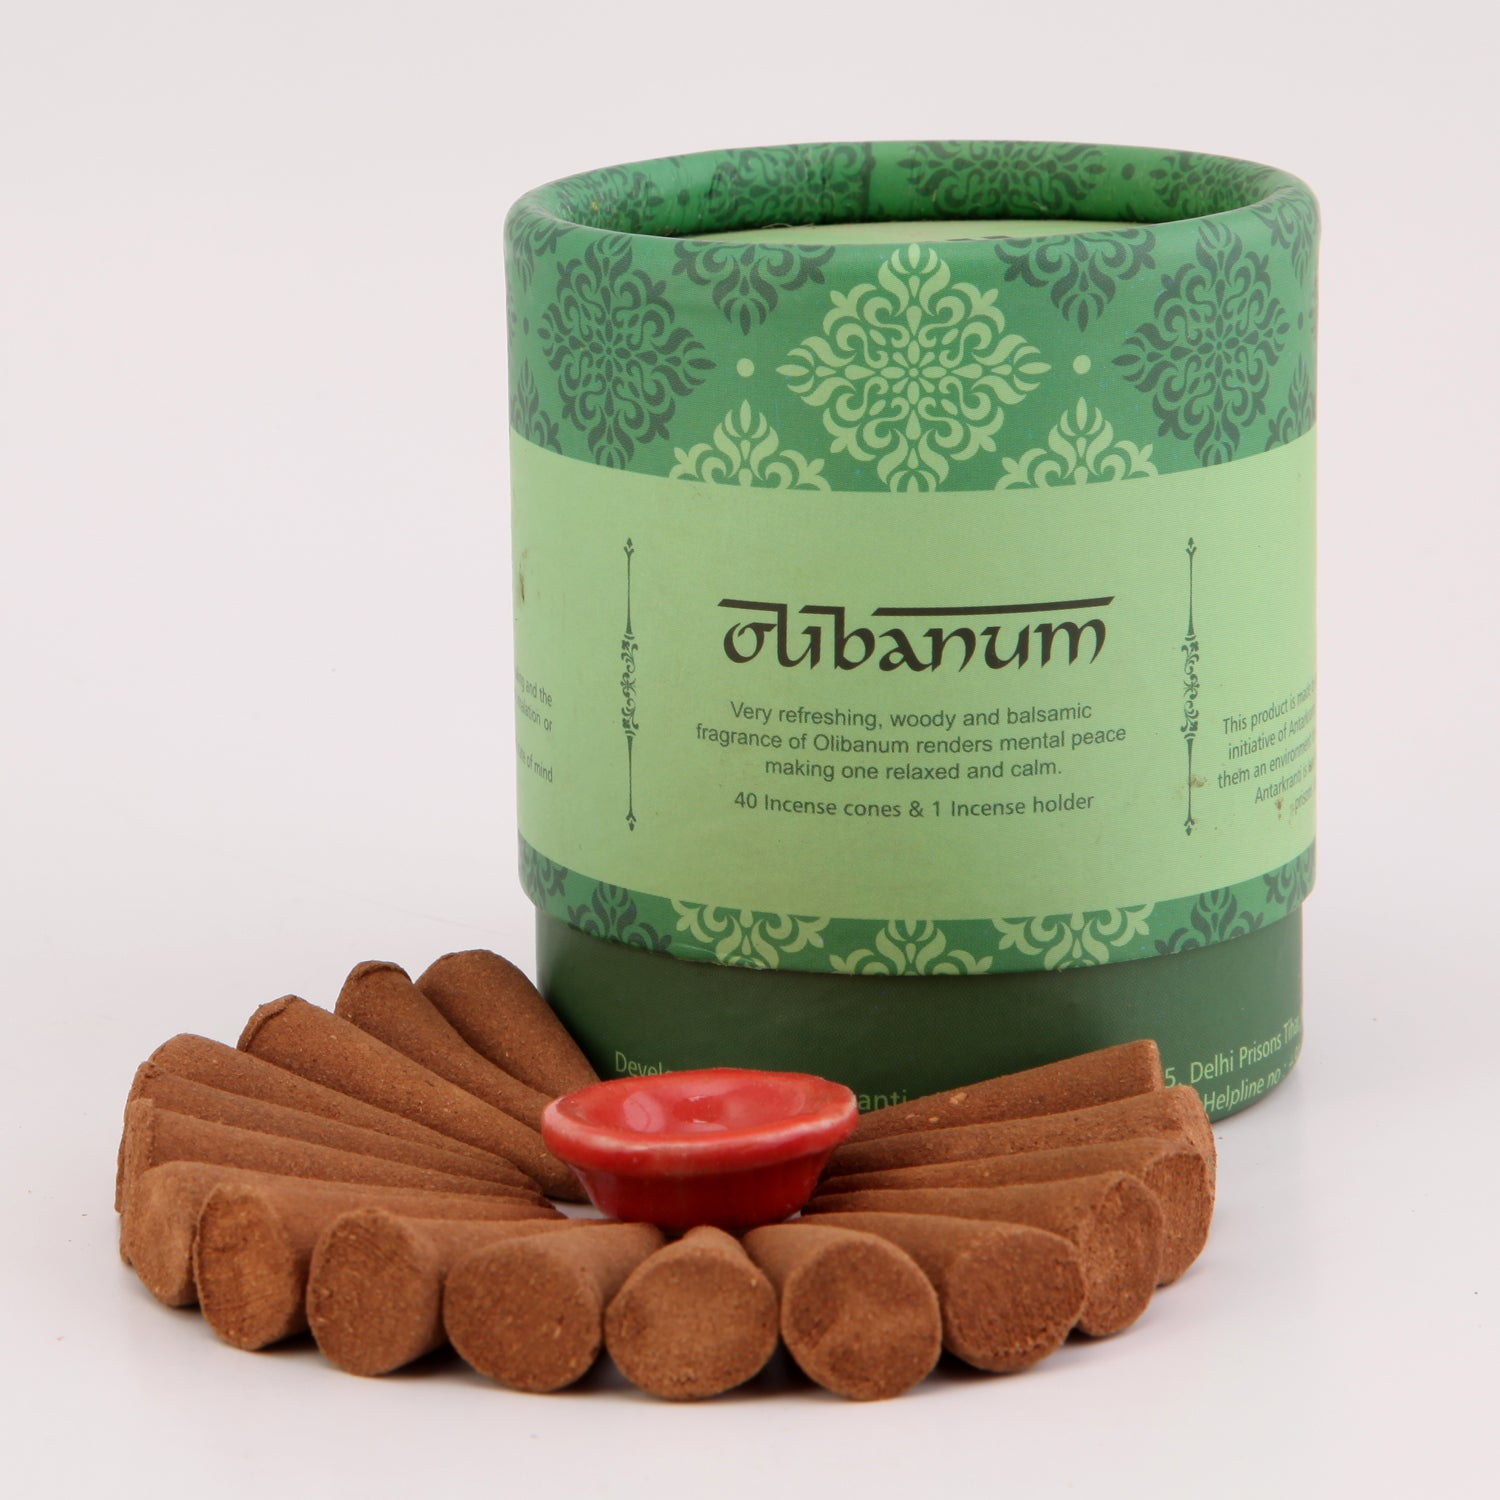 Olibanum fragrance Incense Dhoop cones with a holder